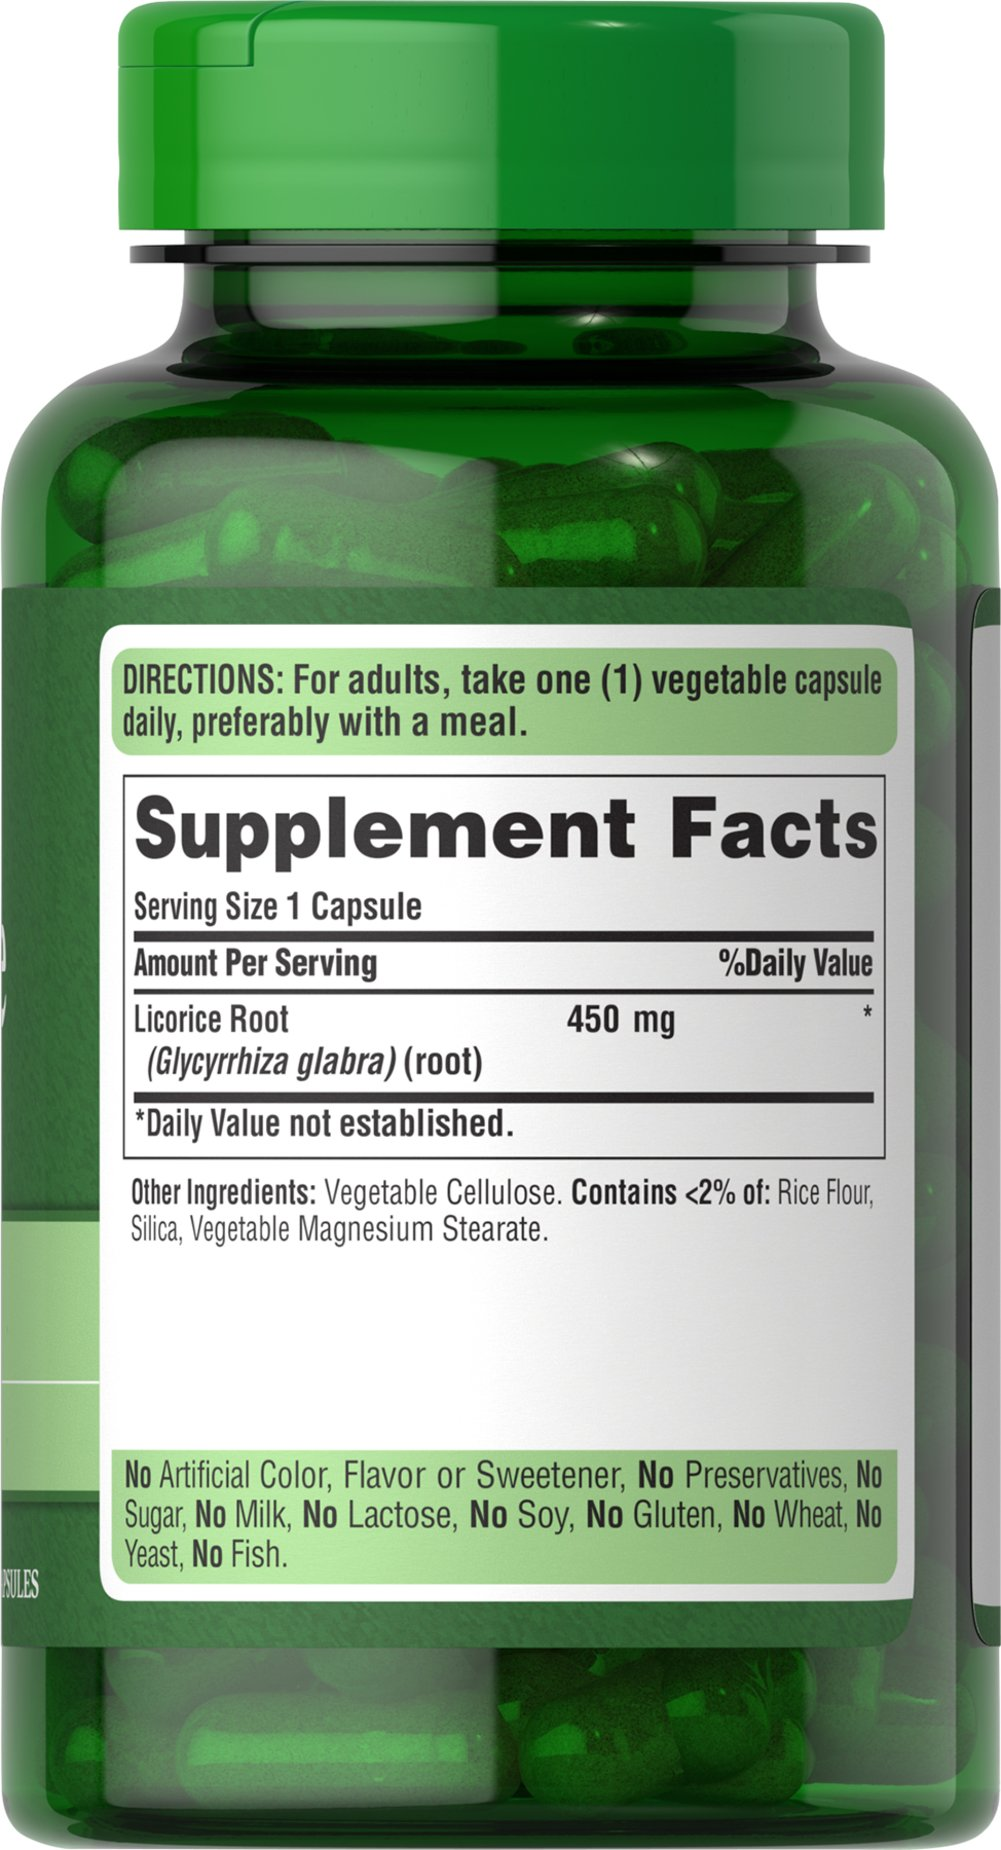 Licorice Root 450 mg Thumbnail Alternate Bottle View